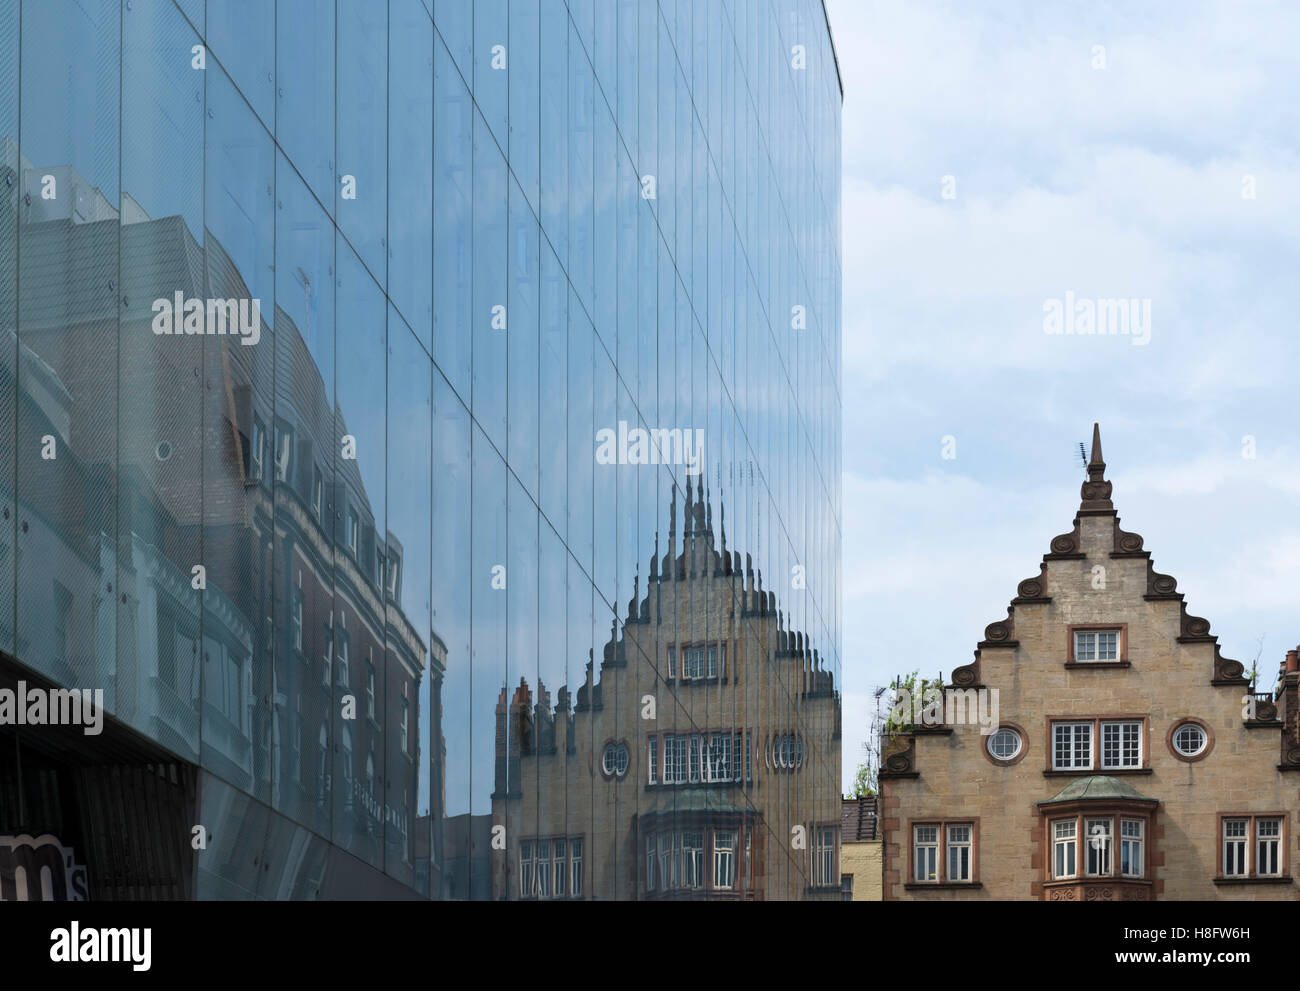 In Coventry Stock Photos & In Coventry Stock Images - Alamy